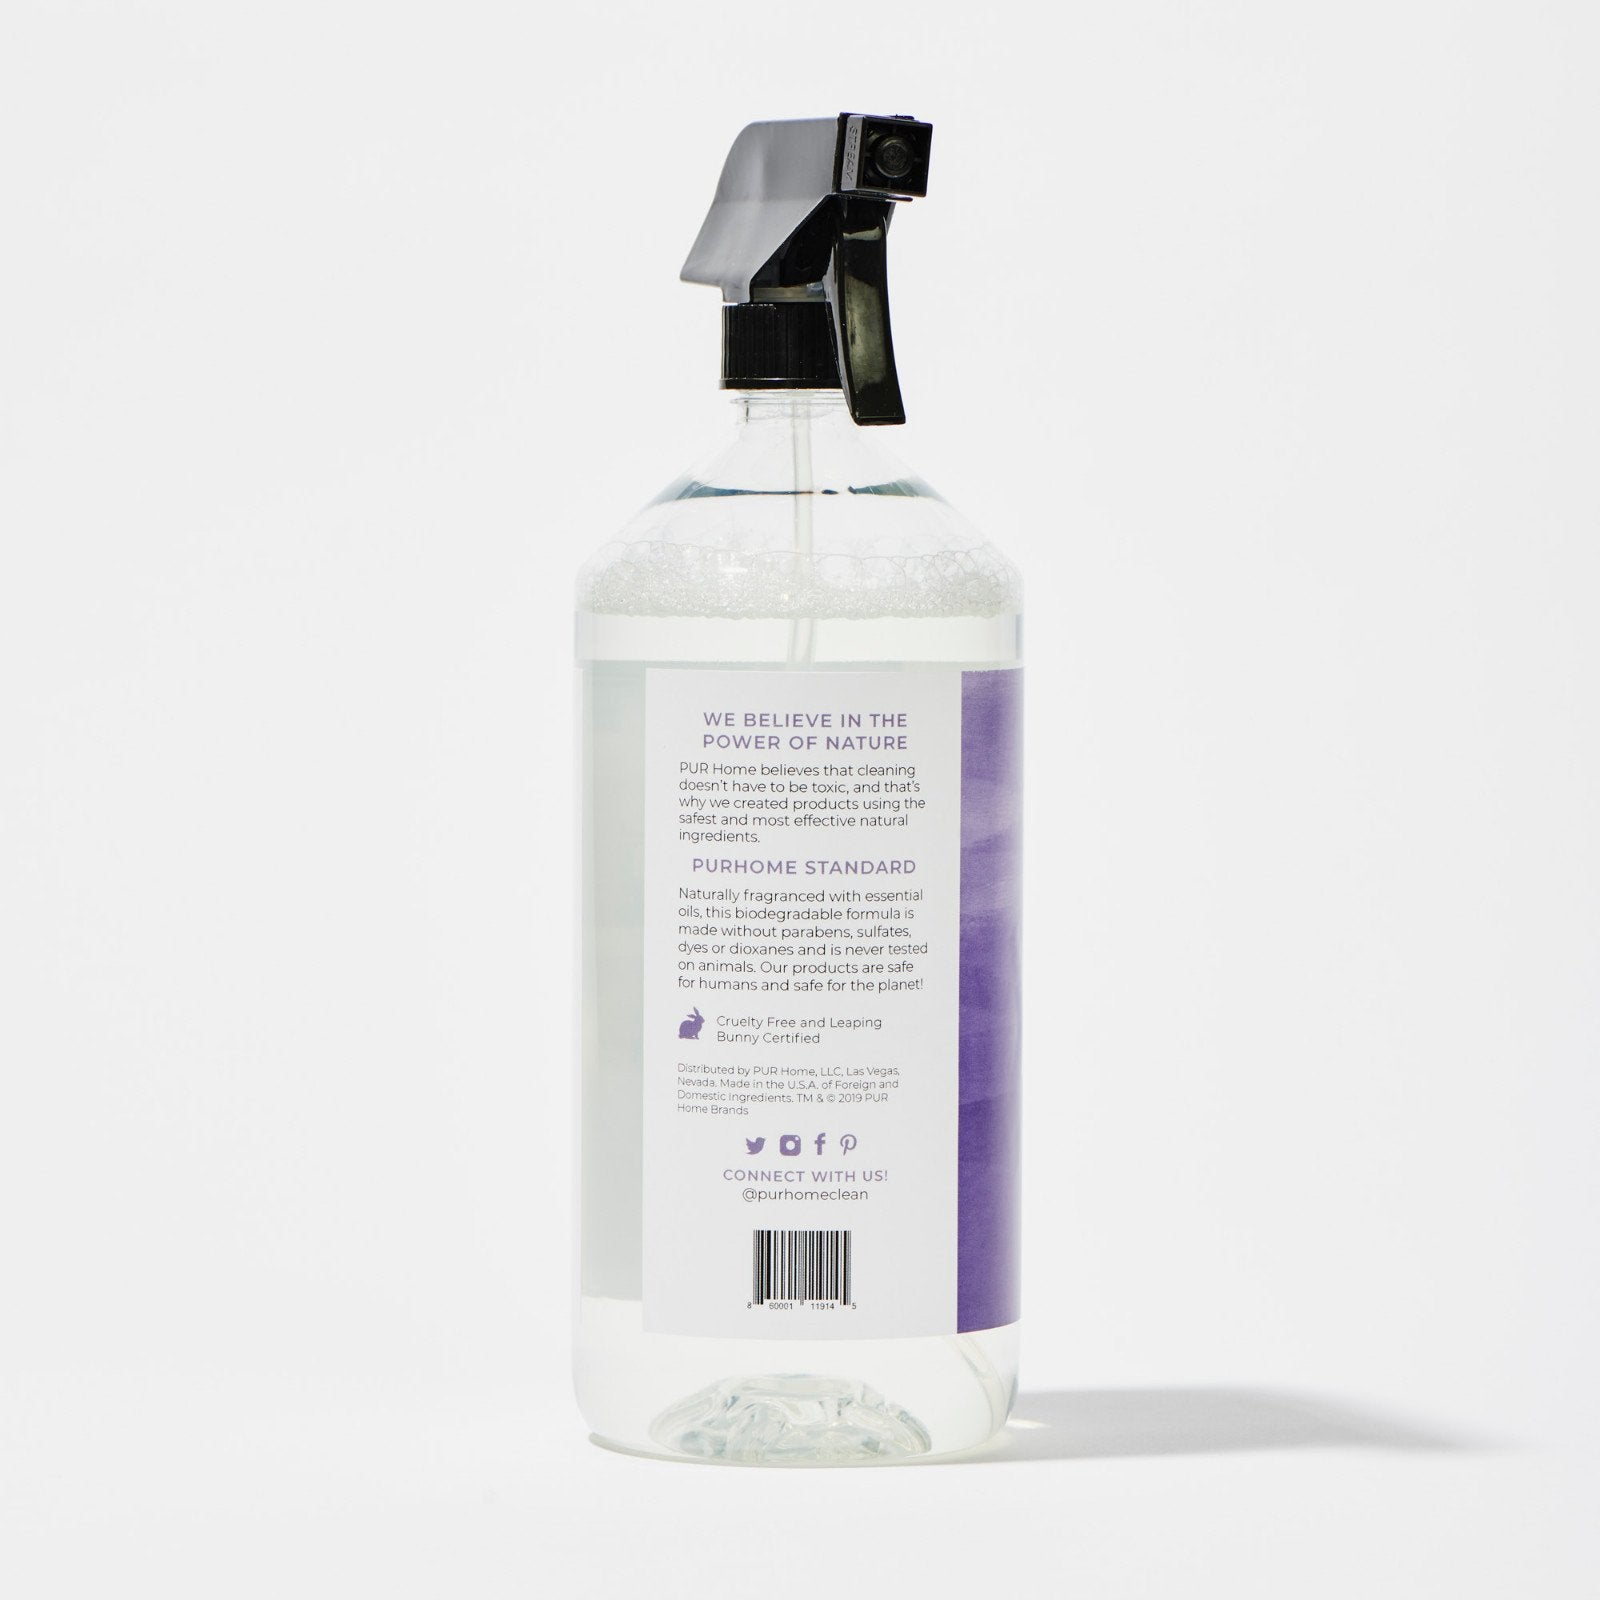 34 oz Multi-Surface Cleaner | Multi-Surface Cleaner Spray | Multi-Surface Cleaner Lemon | Lavender Multi-Purpose Cleaner | Spray Bottle, All-Purpose Household Cleaners | Multipurpose Cleaner | Organic Natural All-Purpose Cleaner